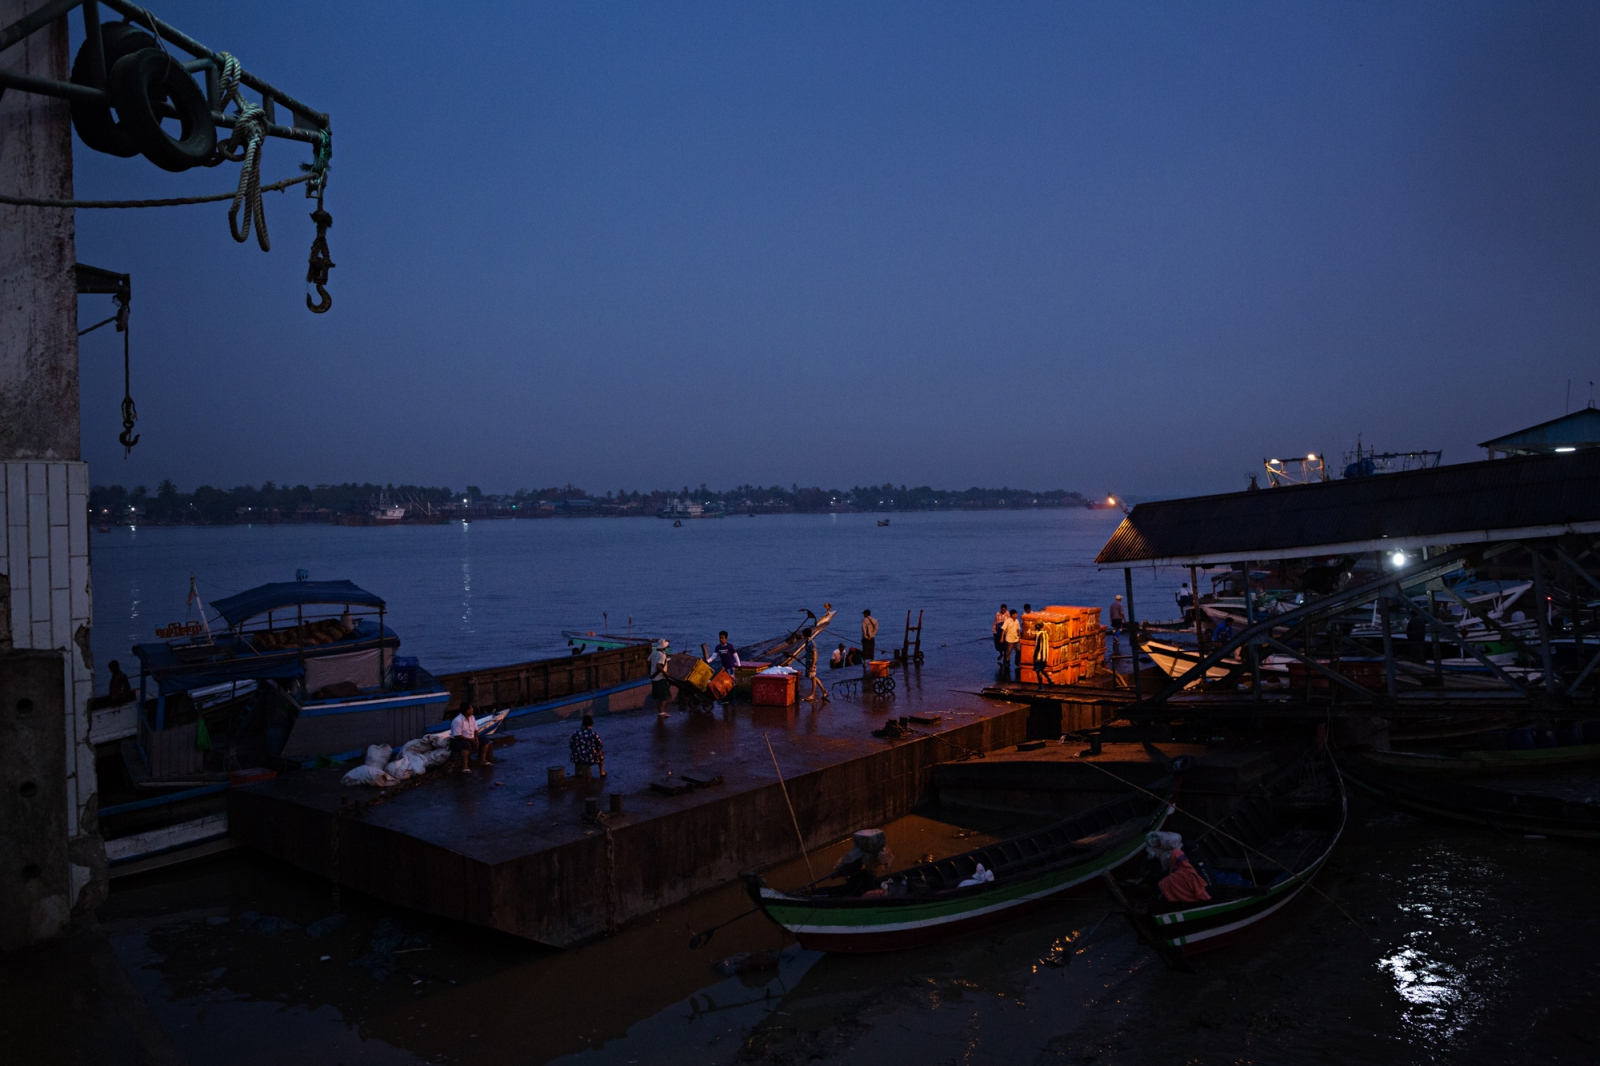 Just before dawn, Fishermen work at the docks of the San Pyae fish market in Yangon.